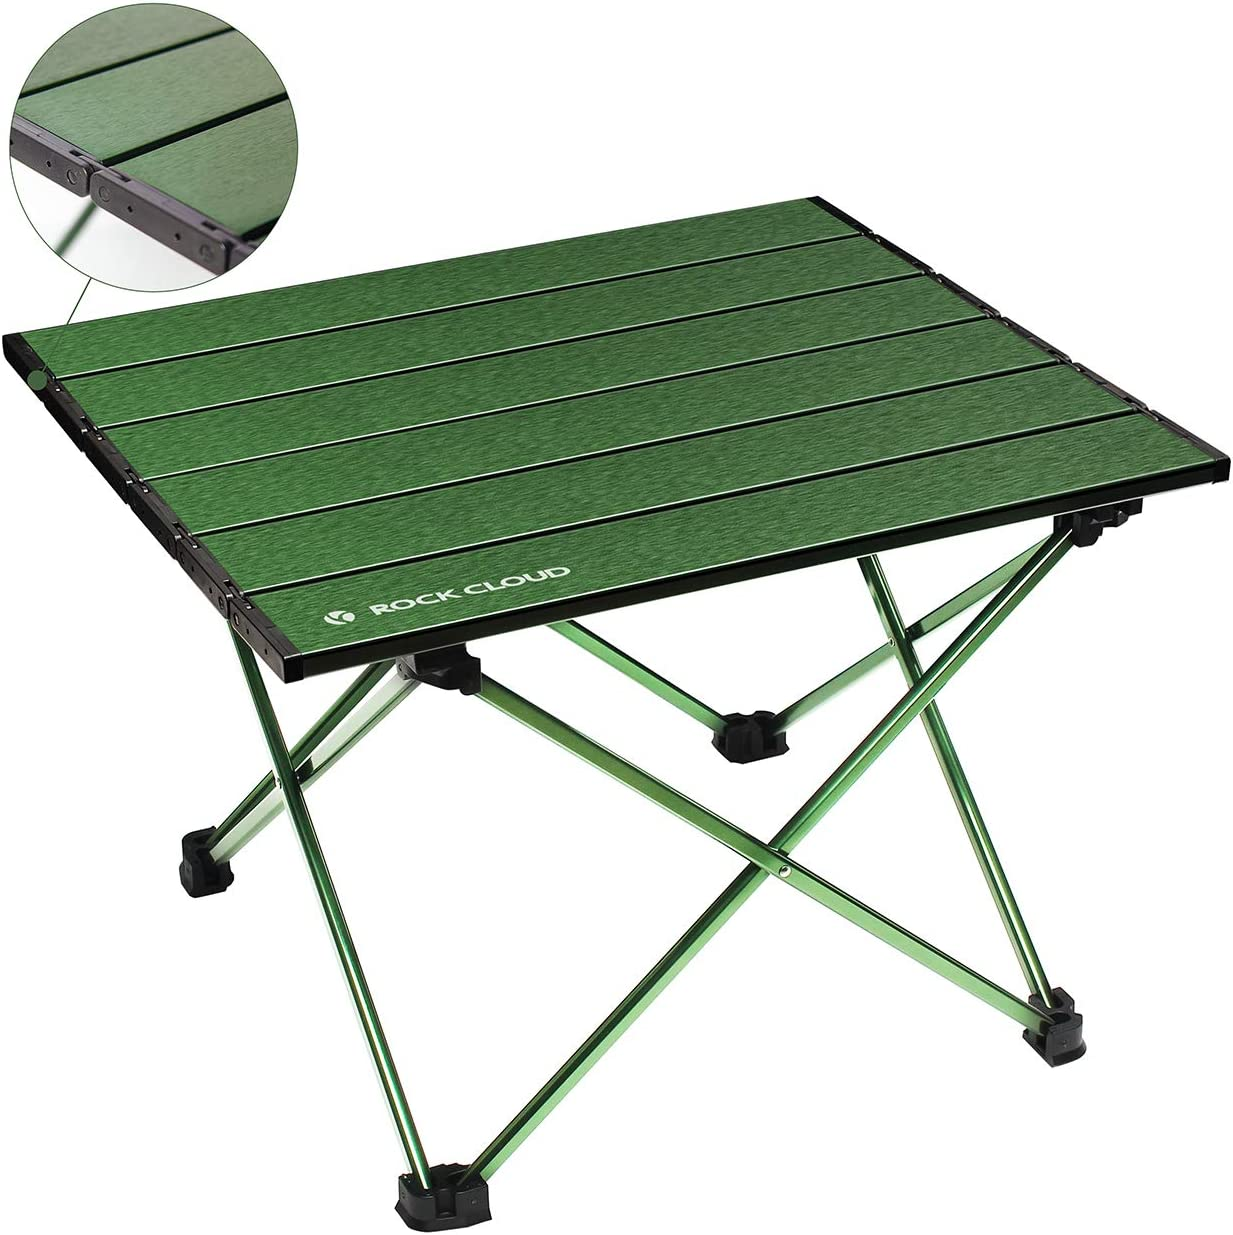 Rock Cloud Portable Camping Table Ultralight Aluminum Camp Table Folding Beach Table for Camping Hiking Backpacking Outdoor Picnic, Green